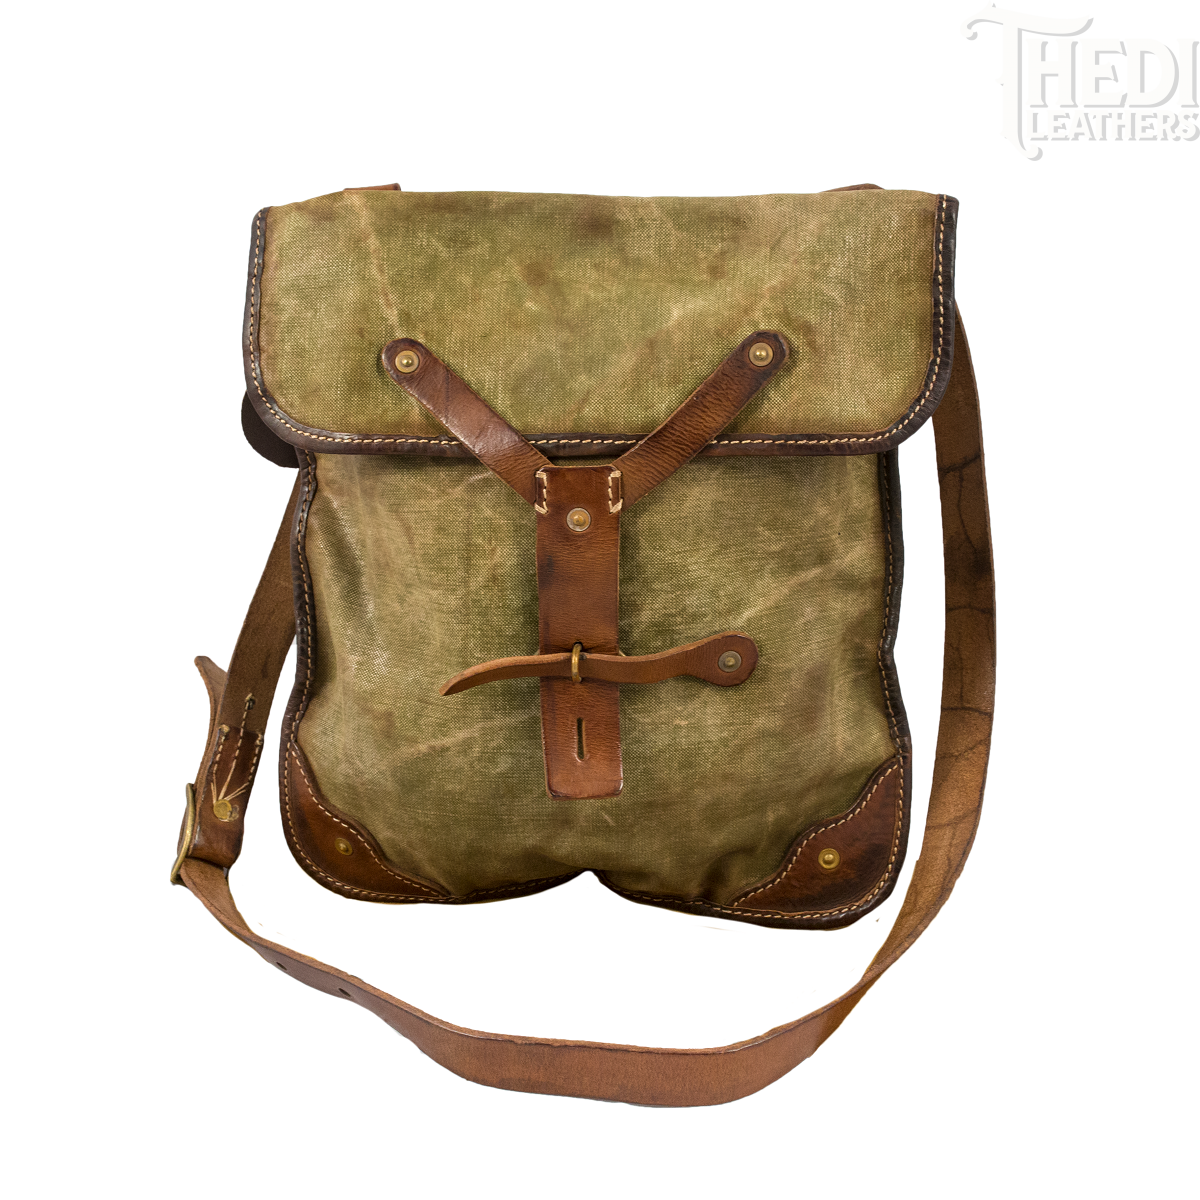 https://thedi-leathers.com/wp-content/uploads/2019/10/SBC300029-FRONT-1.png